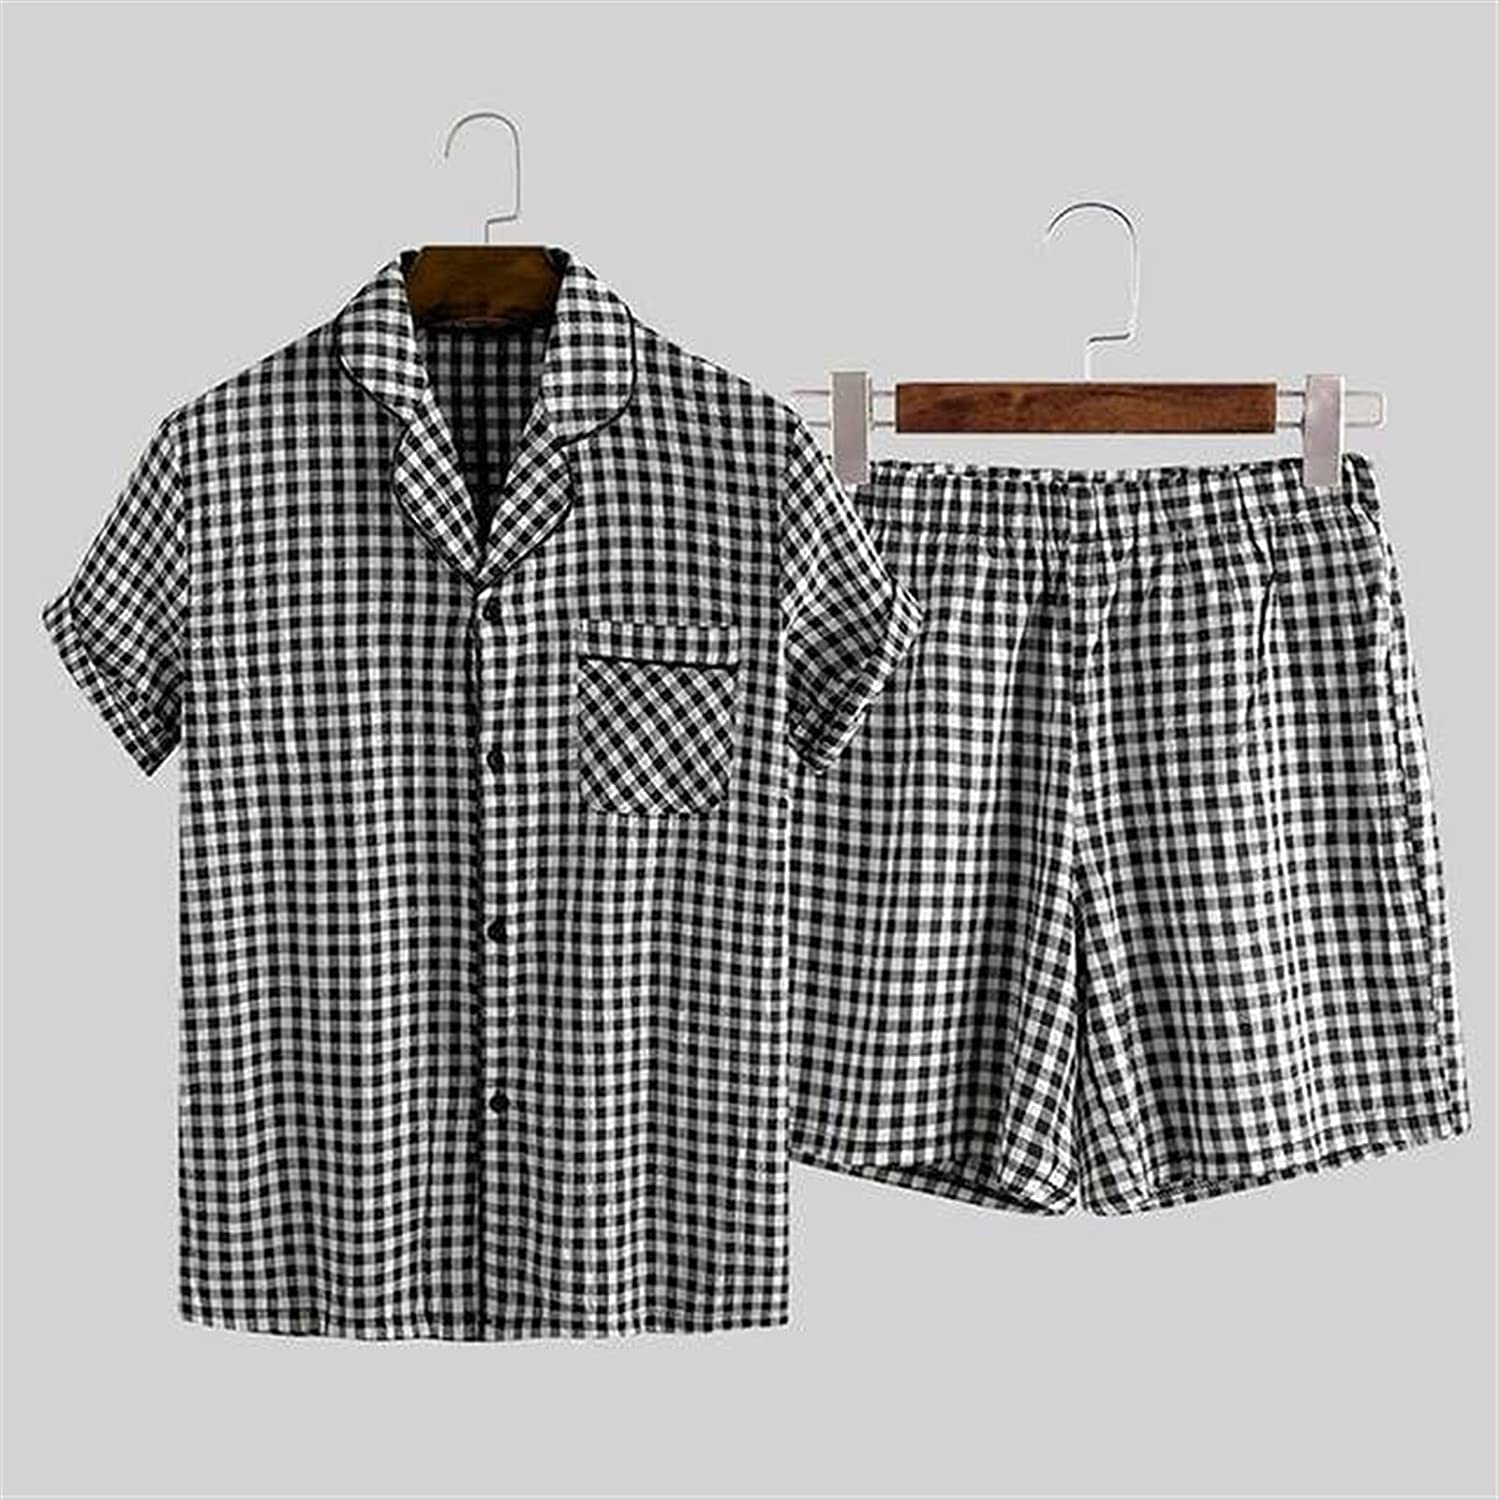 XJYWJ Mens Pajamas Sets Plaid Lapel outlet Button Sleeve Short S Cotton Animer and price revision